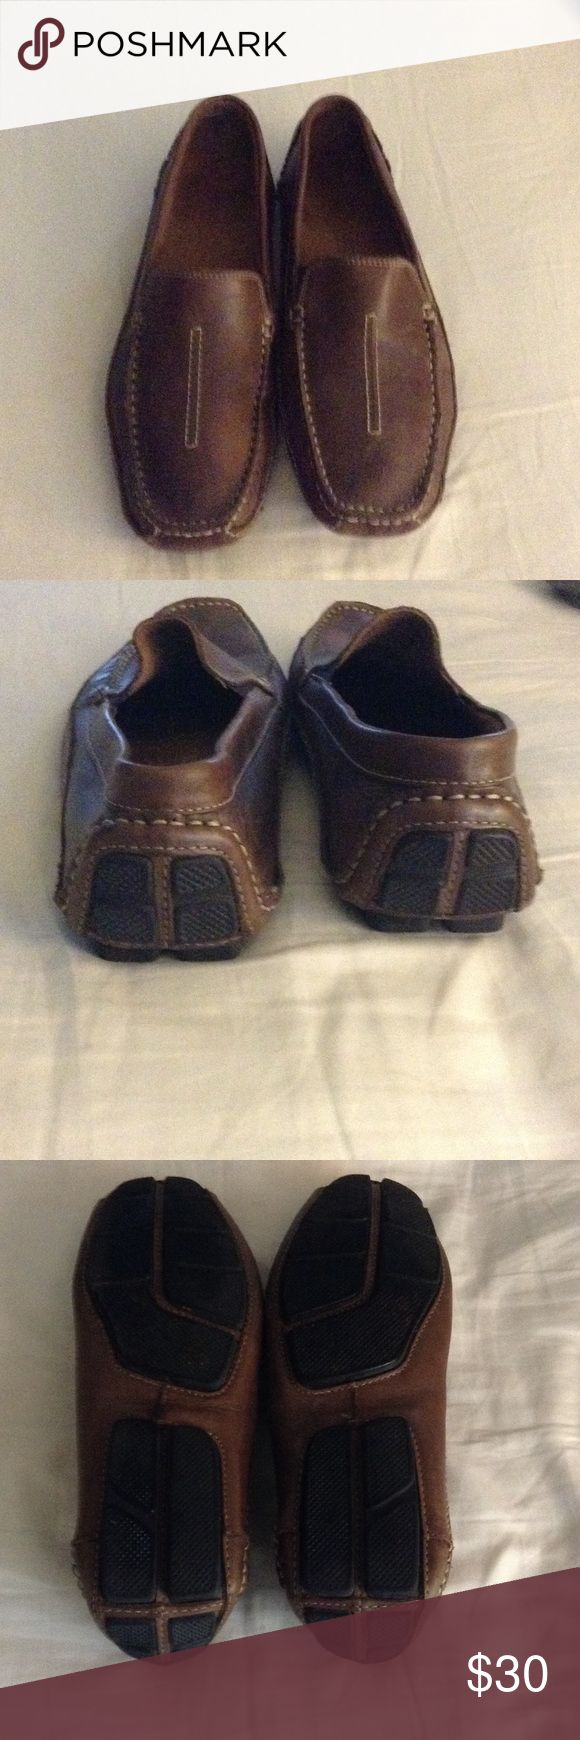 Men's Clarks size 10 Men's Clarks shoes in good condition.  Husband needed another size.  The are used.  Ask questions if you need to. Shoes Loafers & Slip-Ons